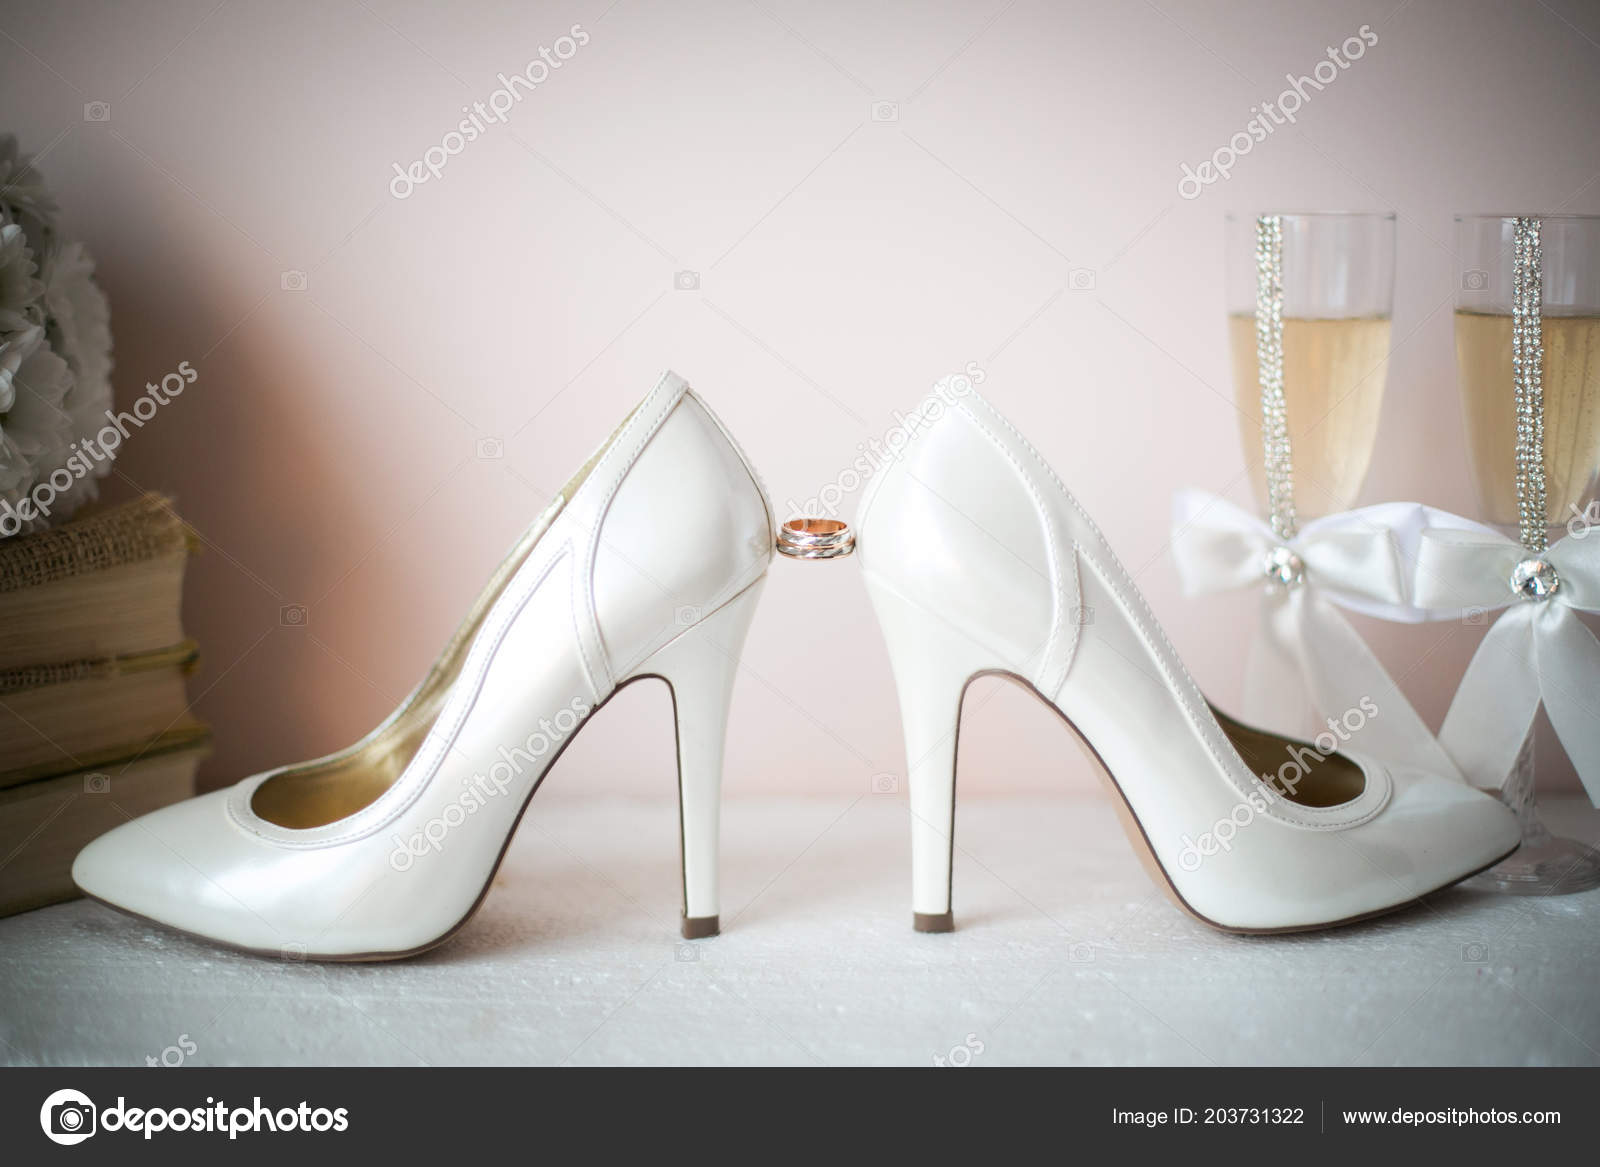 3deebfd4a9c27 Bridal Wedding Sandal Shoes Women Luxury Brand High Heels Pumps — Stock  Photo